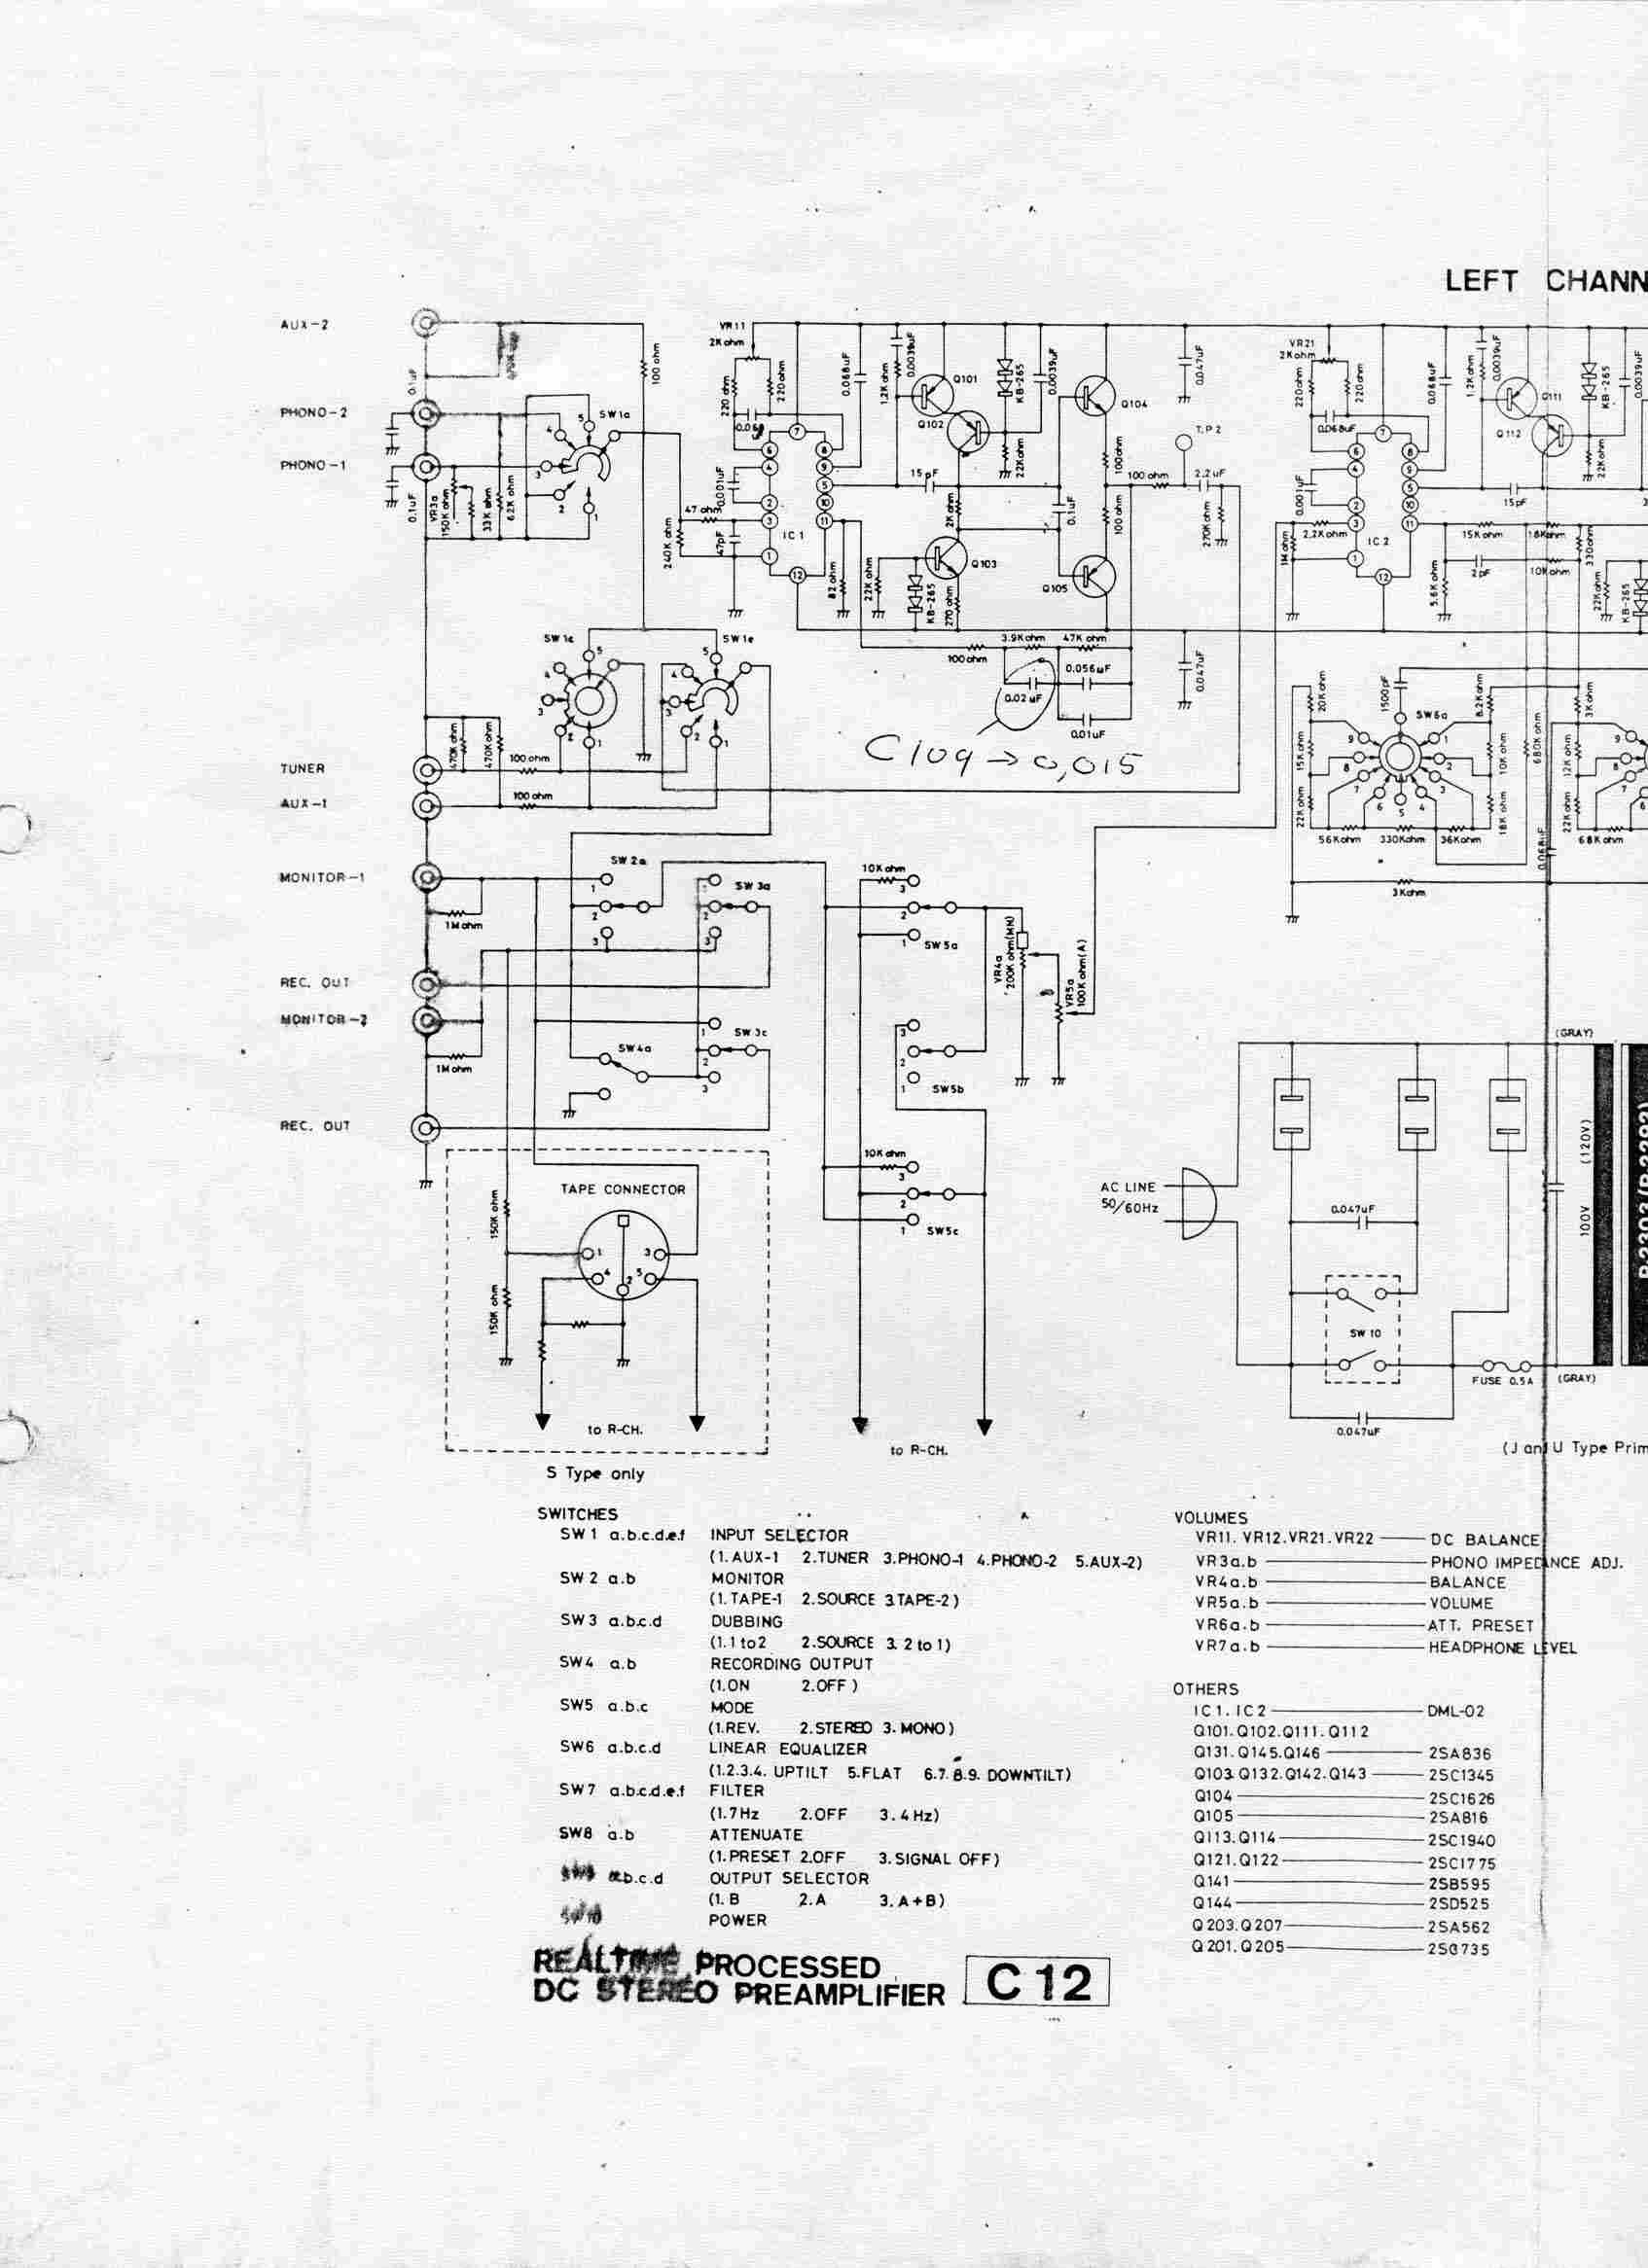 Luxman C12 Schematic Luxman audio products – Luxman Wiring Diagram